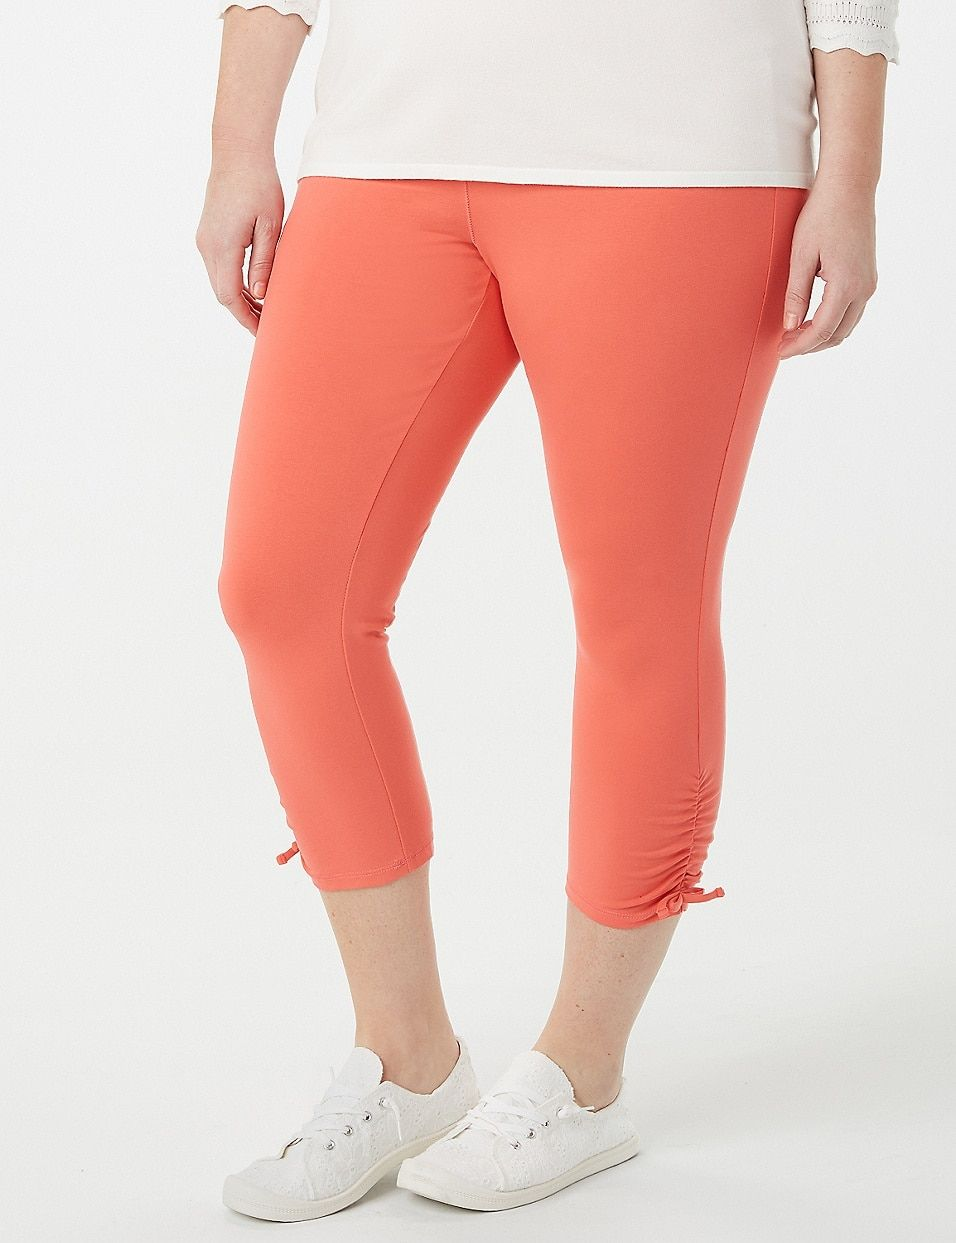 a1600cbc061ff9 Plus Size Tied-Bottom Leggings   dressbarn   Passion for Fashion in ...